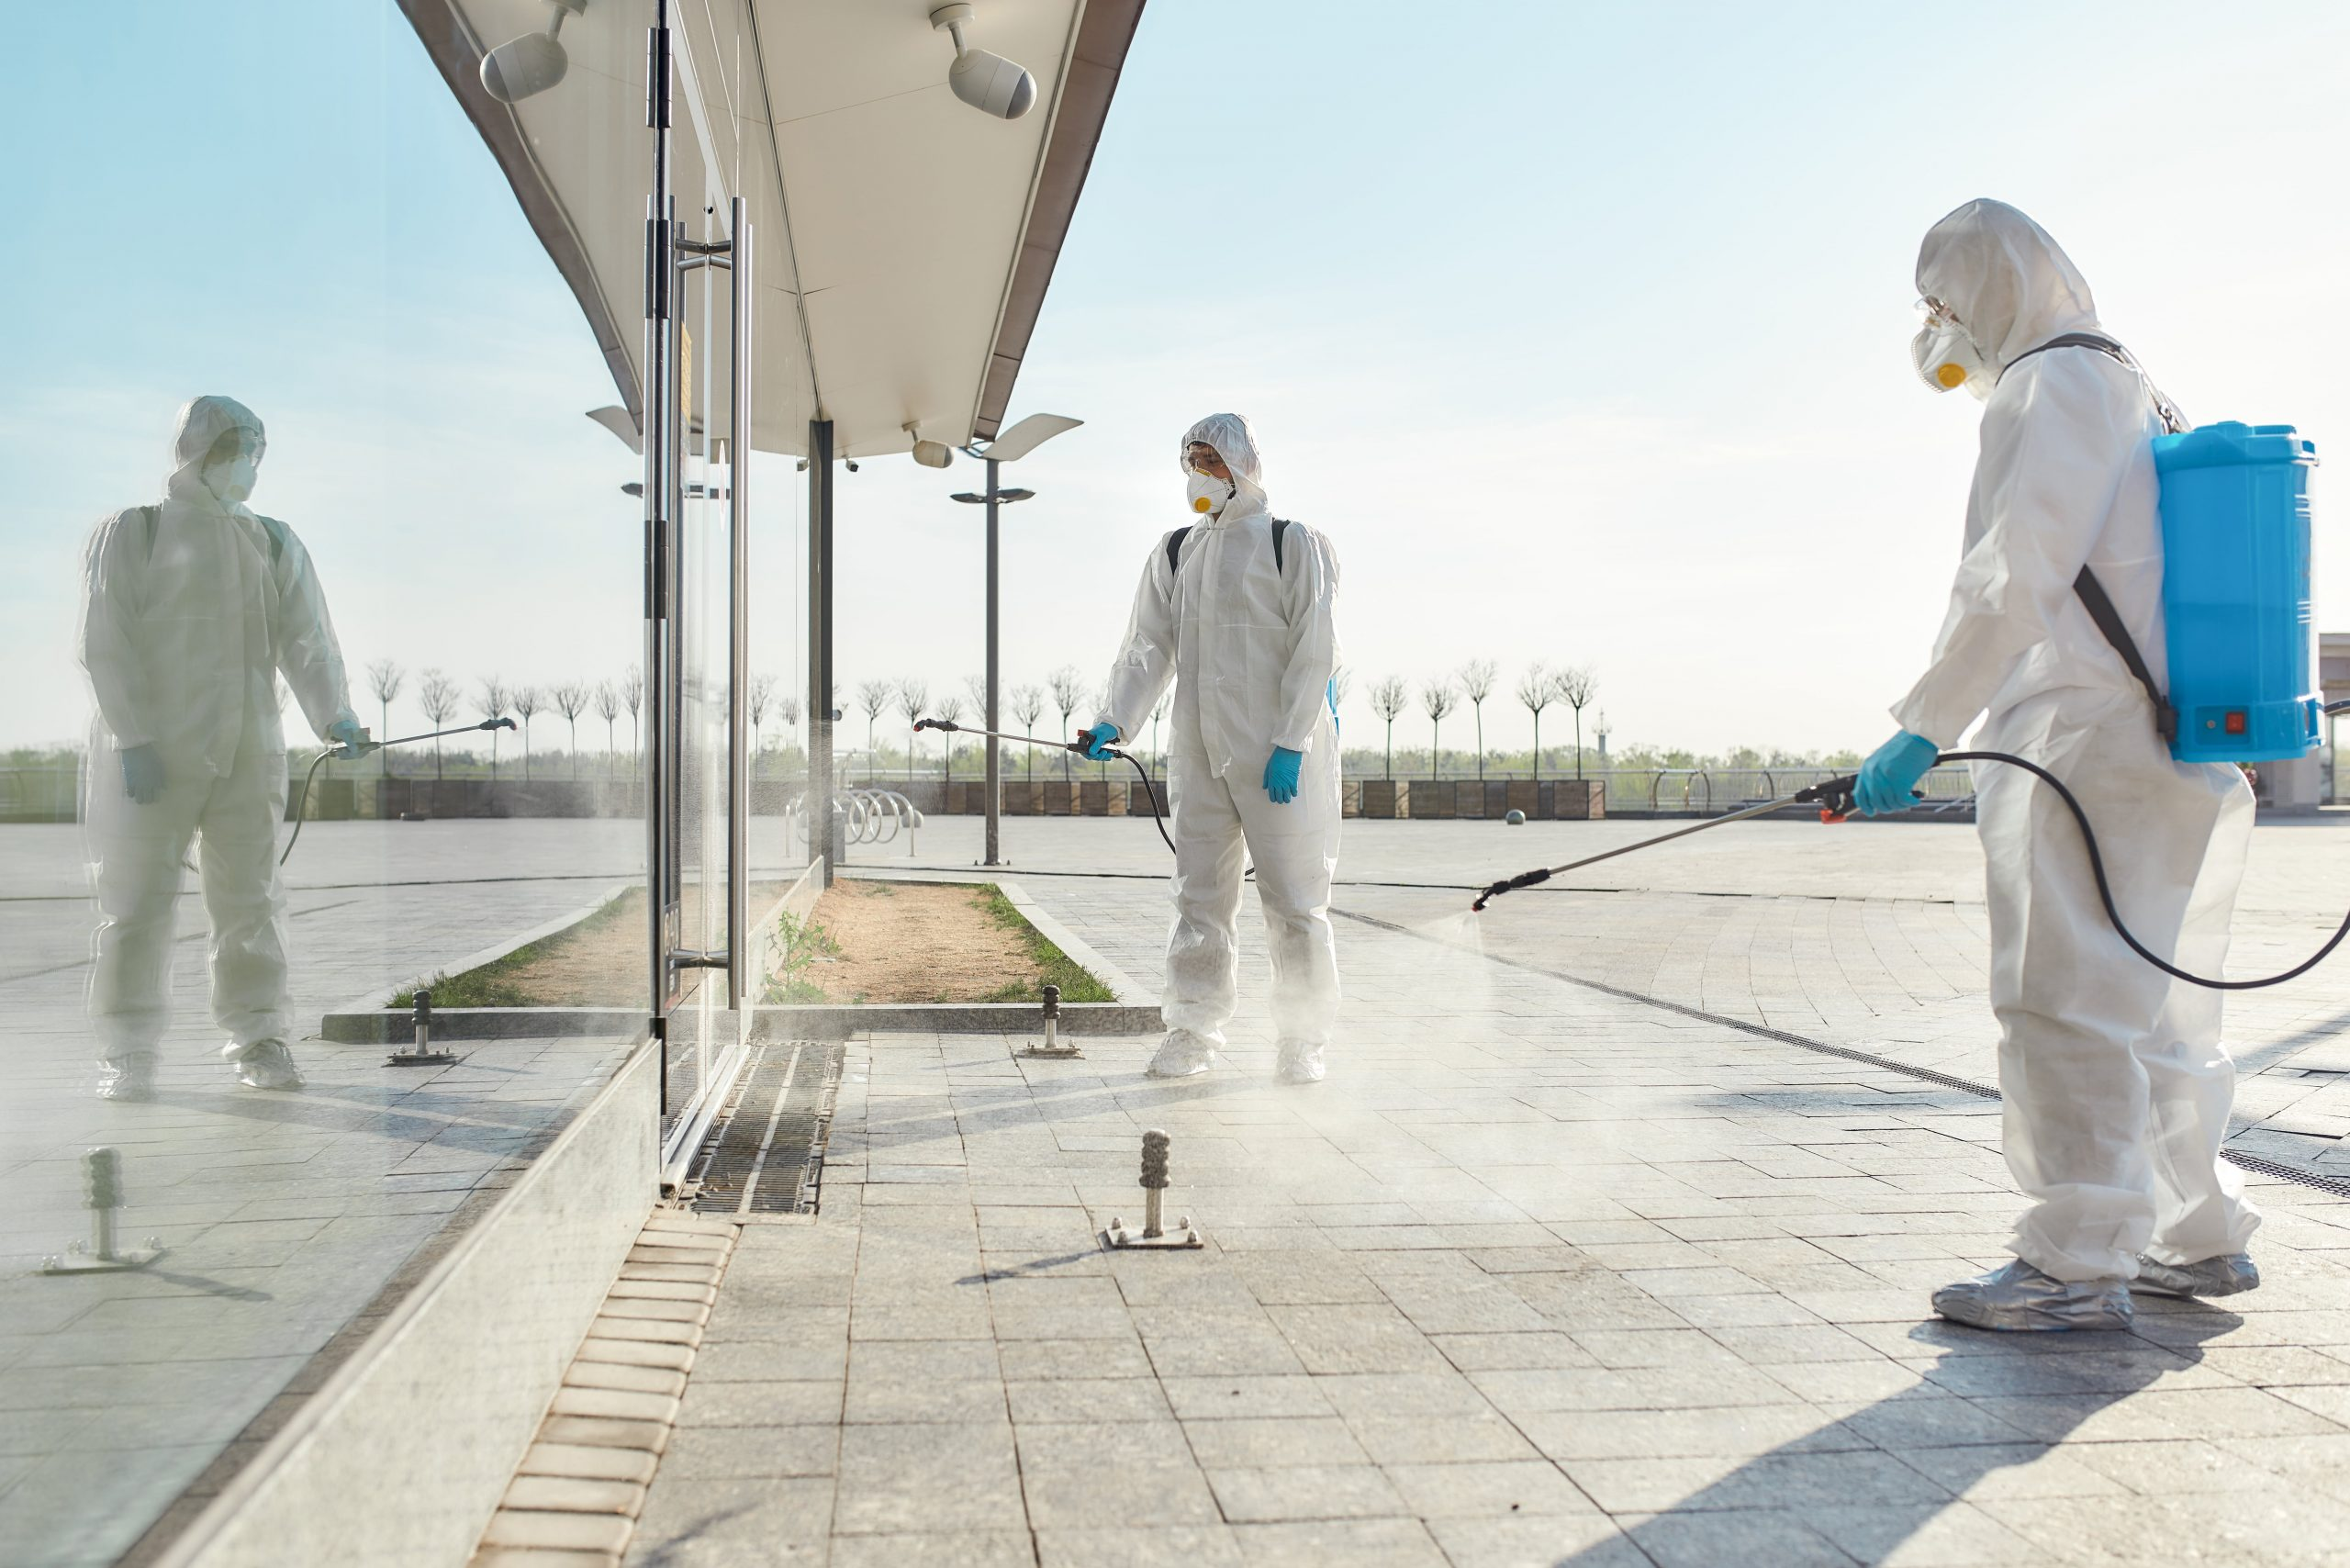 Extreme Cleaning Solutions. Sanitization, cleaning and disinfection of the city due to the emergence of the Covid19 virus. Specialized team in protective suits and masks at work